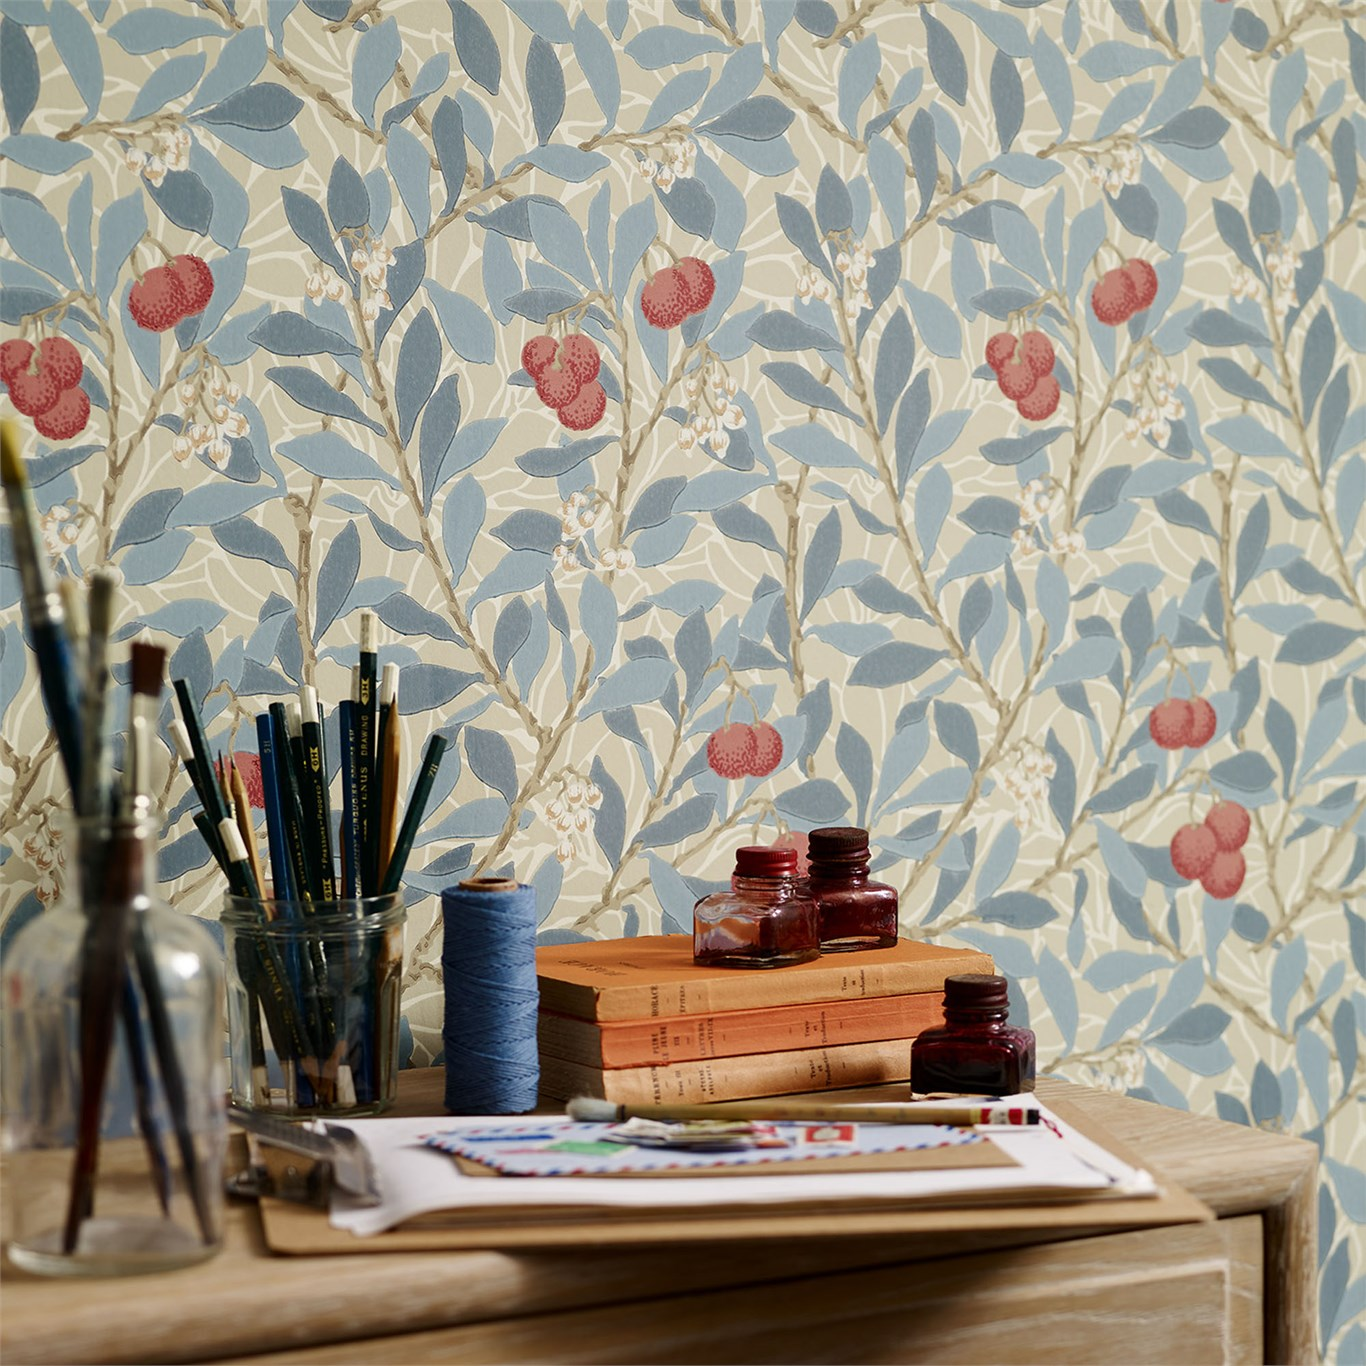 Arbutus wallpaper Detail With Desk